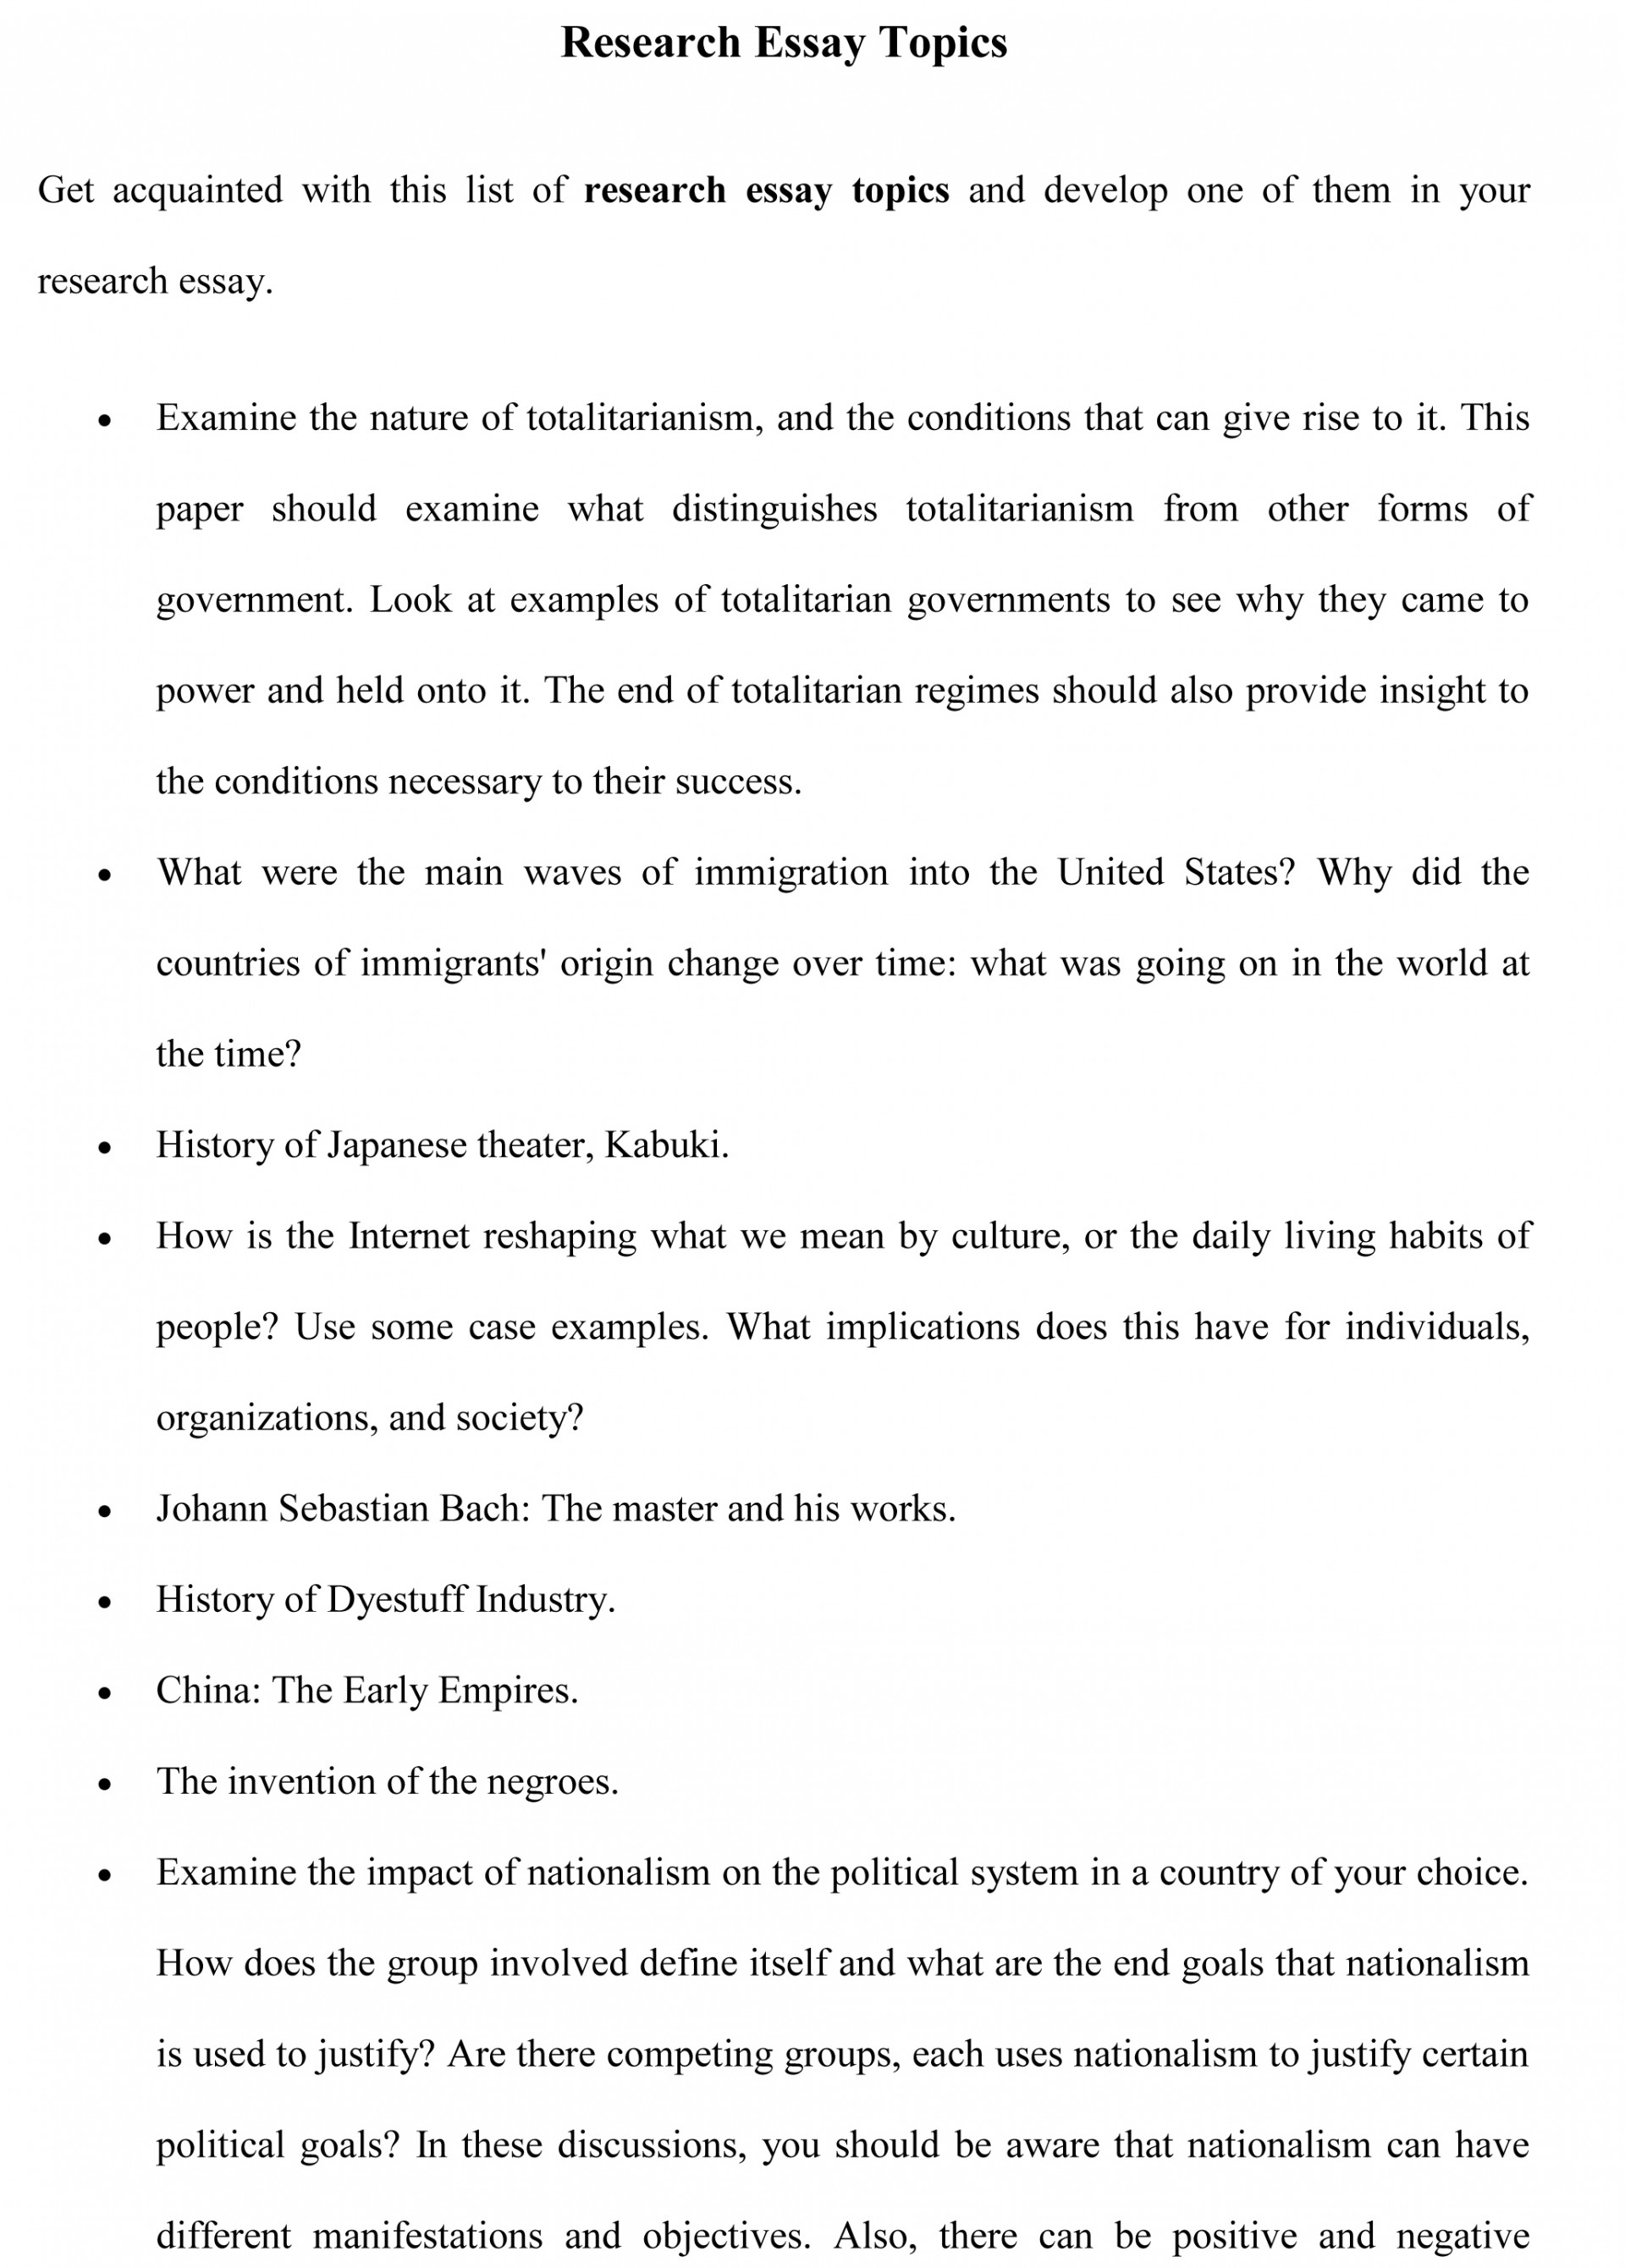 011 Research Paper Essay Topics Sample Chinese Awful Economy 1920